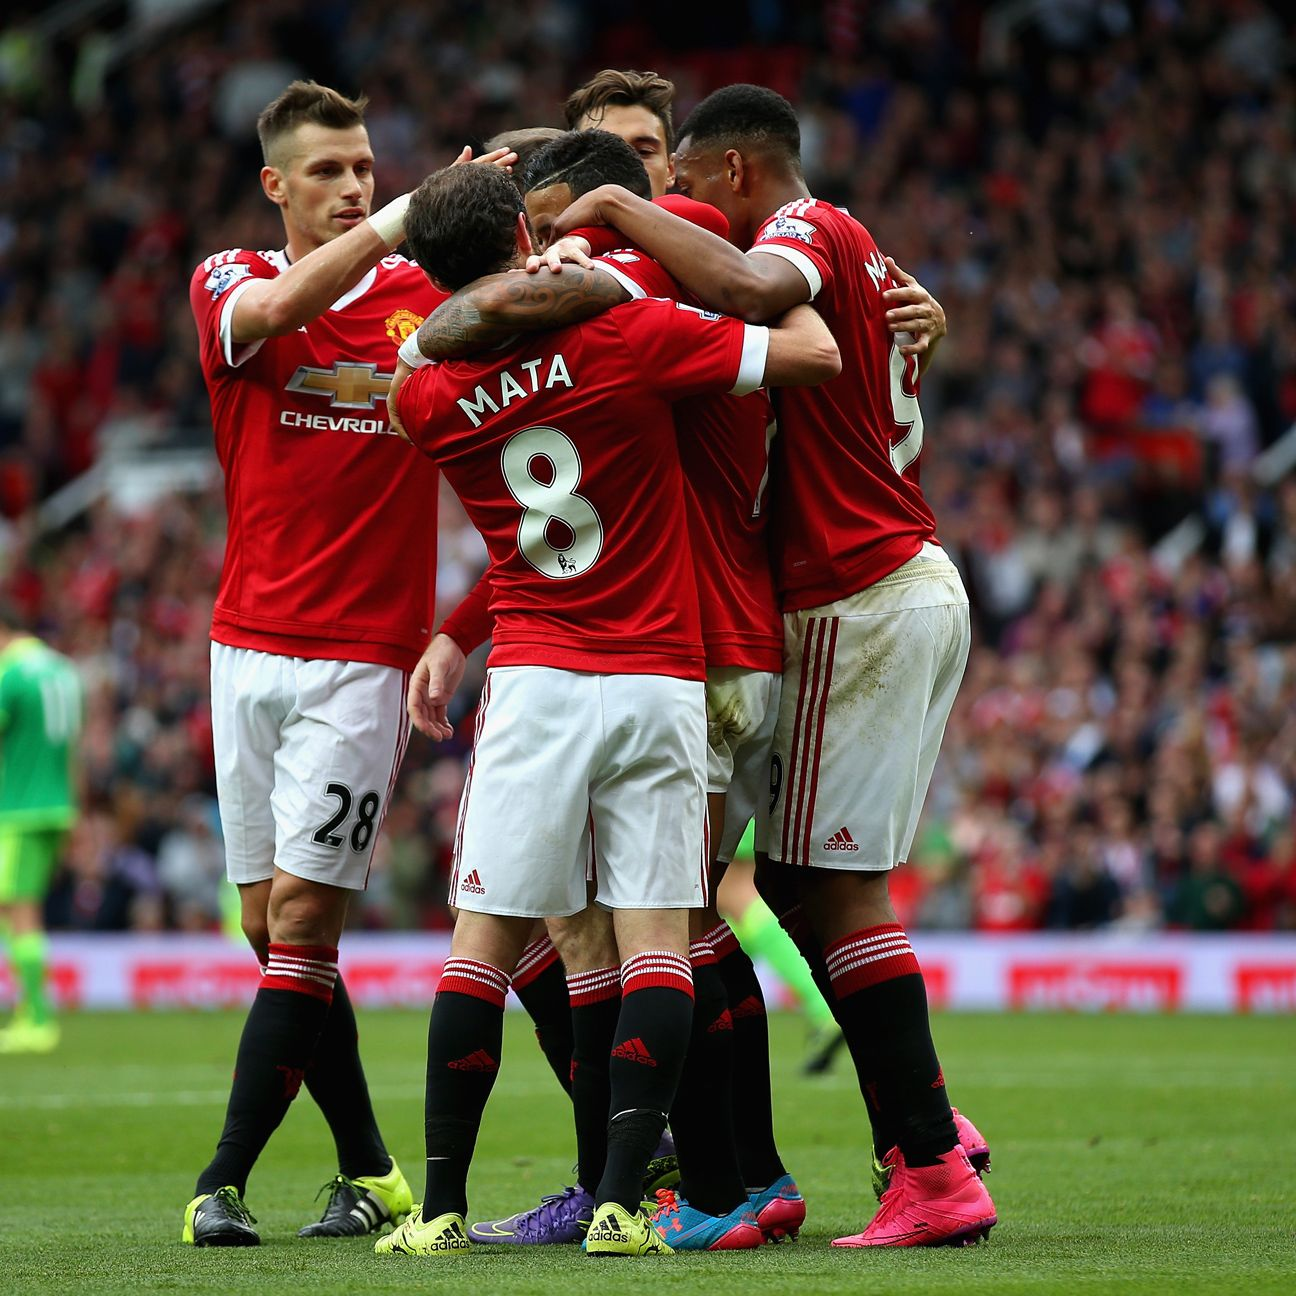 Are Manchester United a good value bet against Arsenal?